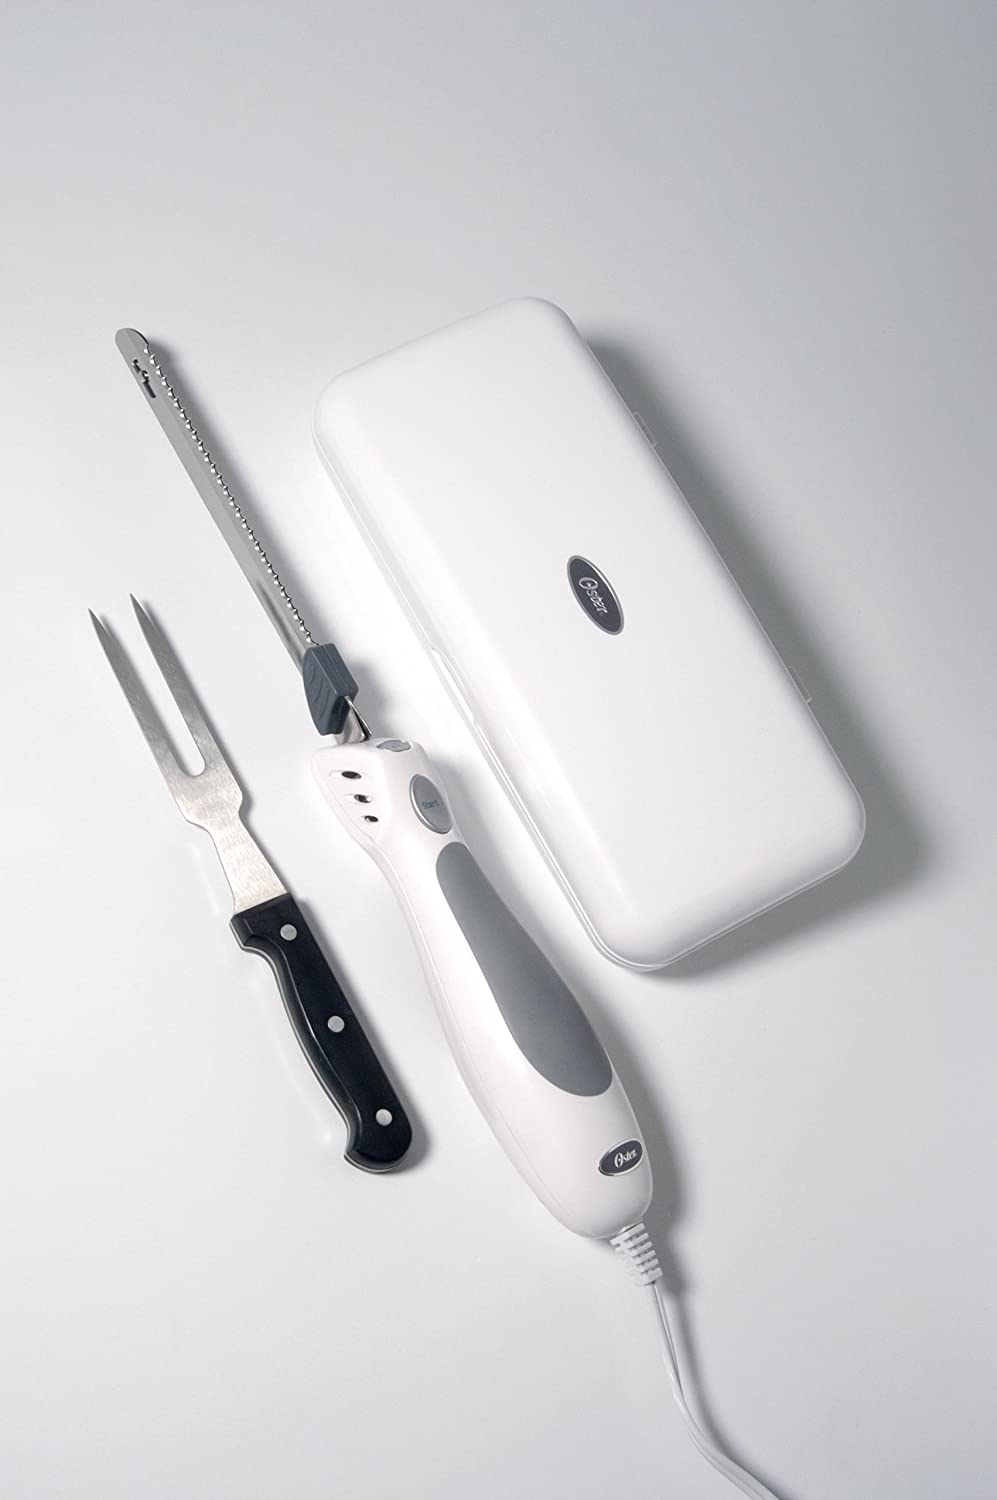 Oster 2803 Inspire Electric Knife with Bonus Carving Fork, White